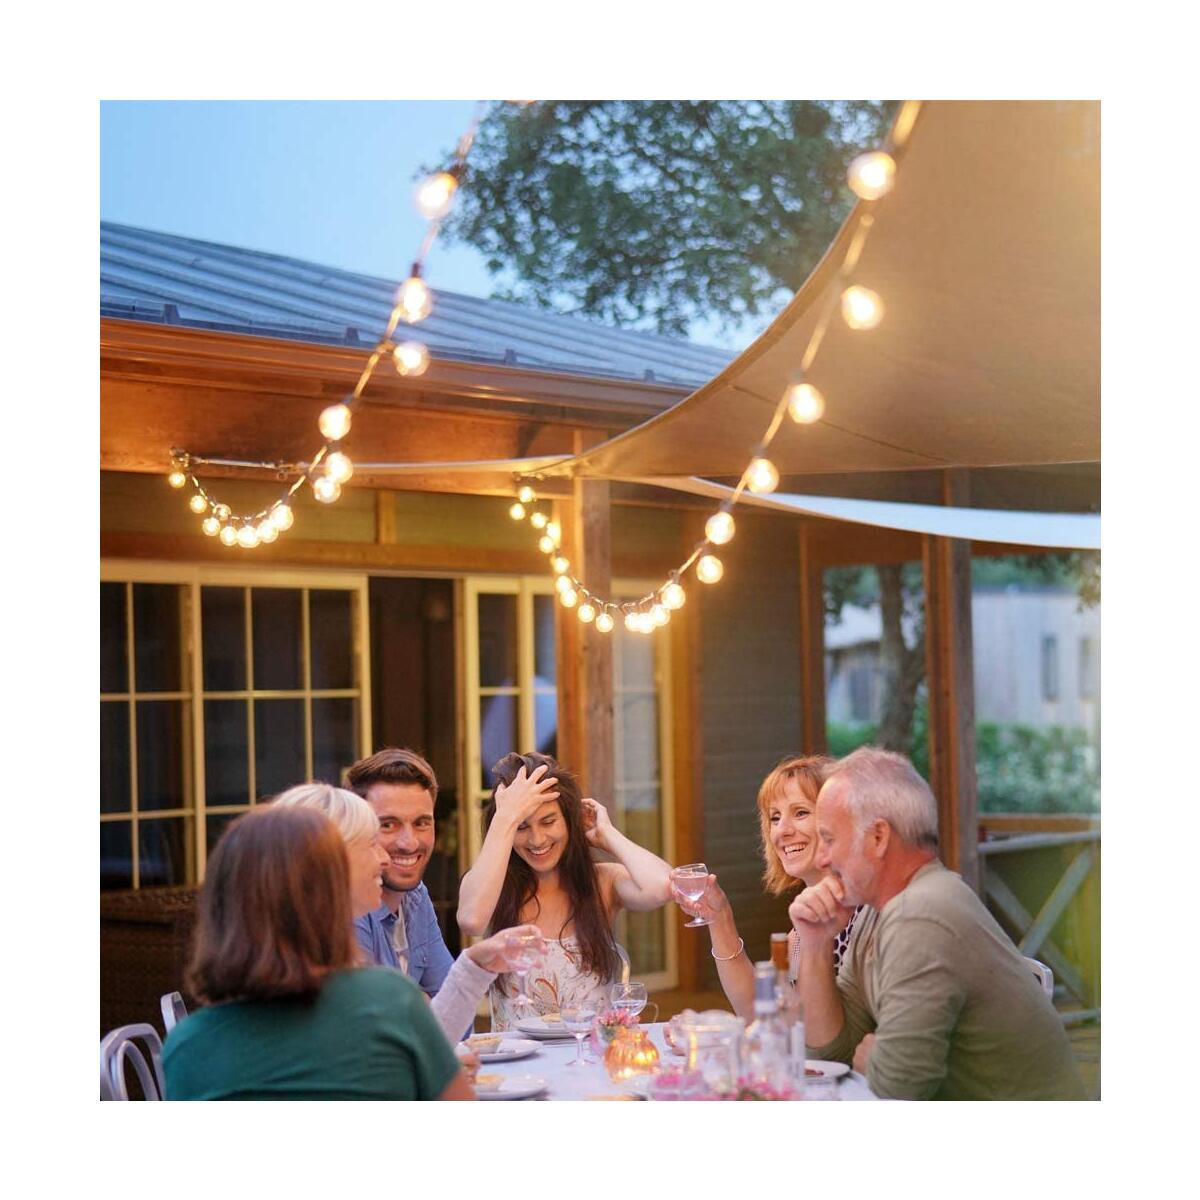 Newpow LED Outdoor String Lights 48ft with 25 Dimmable IPX6 Waterproof G40 LED Globe Bulbs